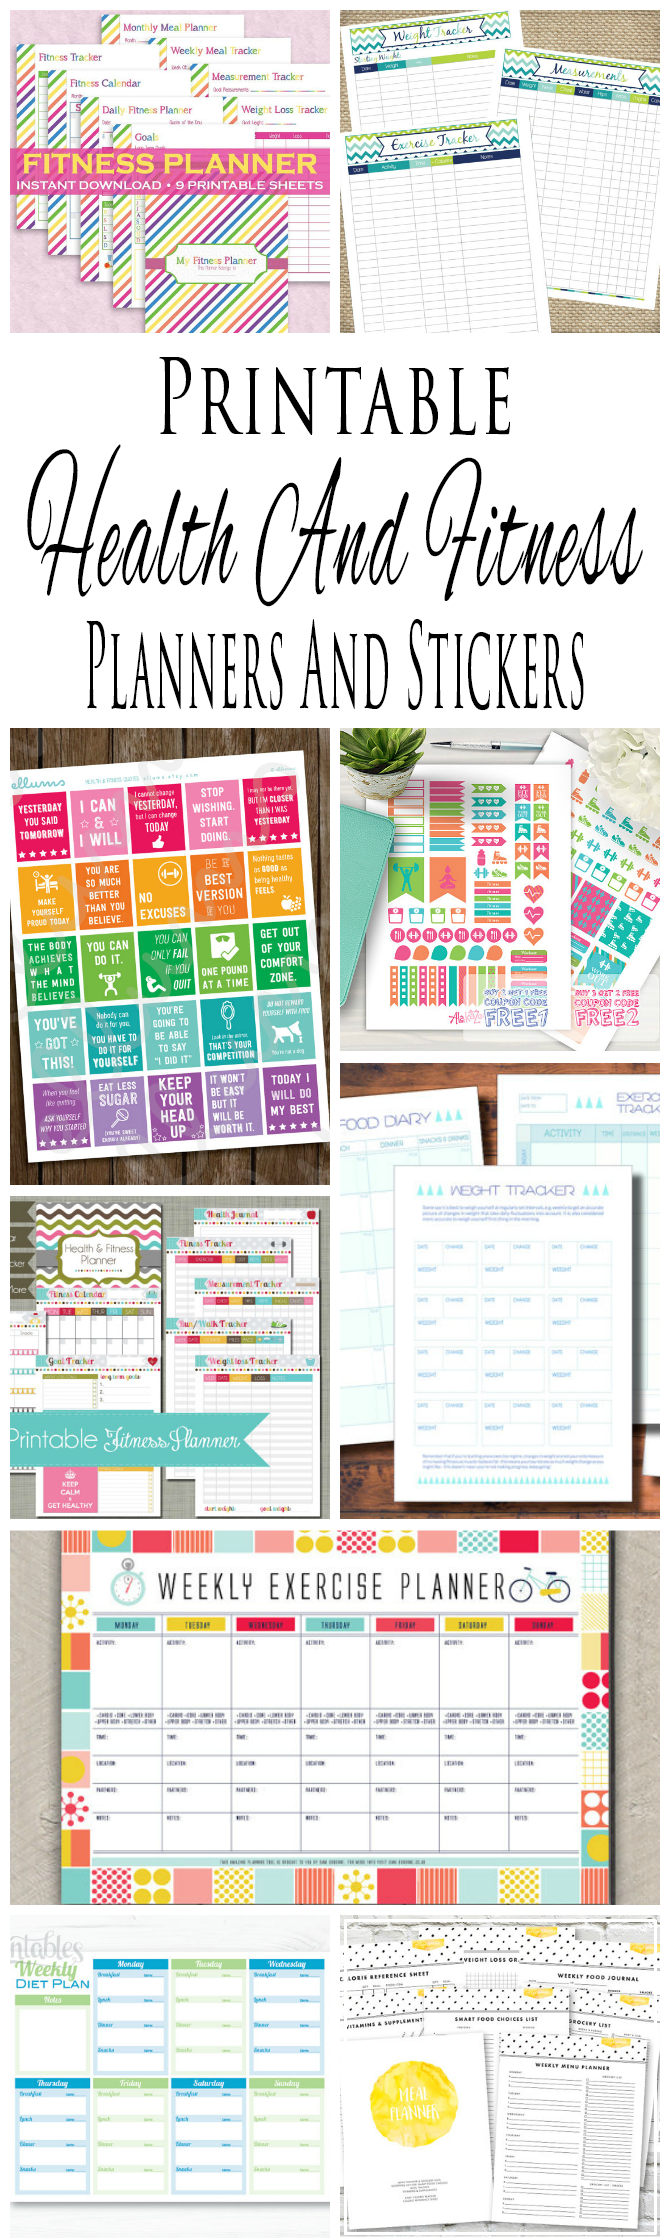 Printable Health And Fitness Planners And Printable Planner Stickers ...